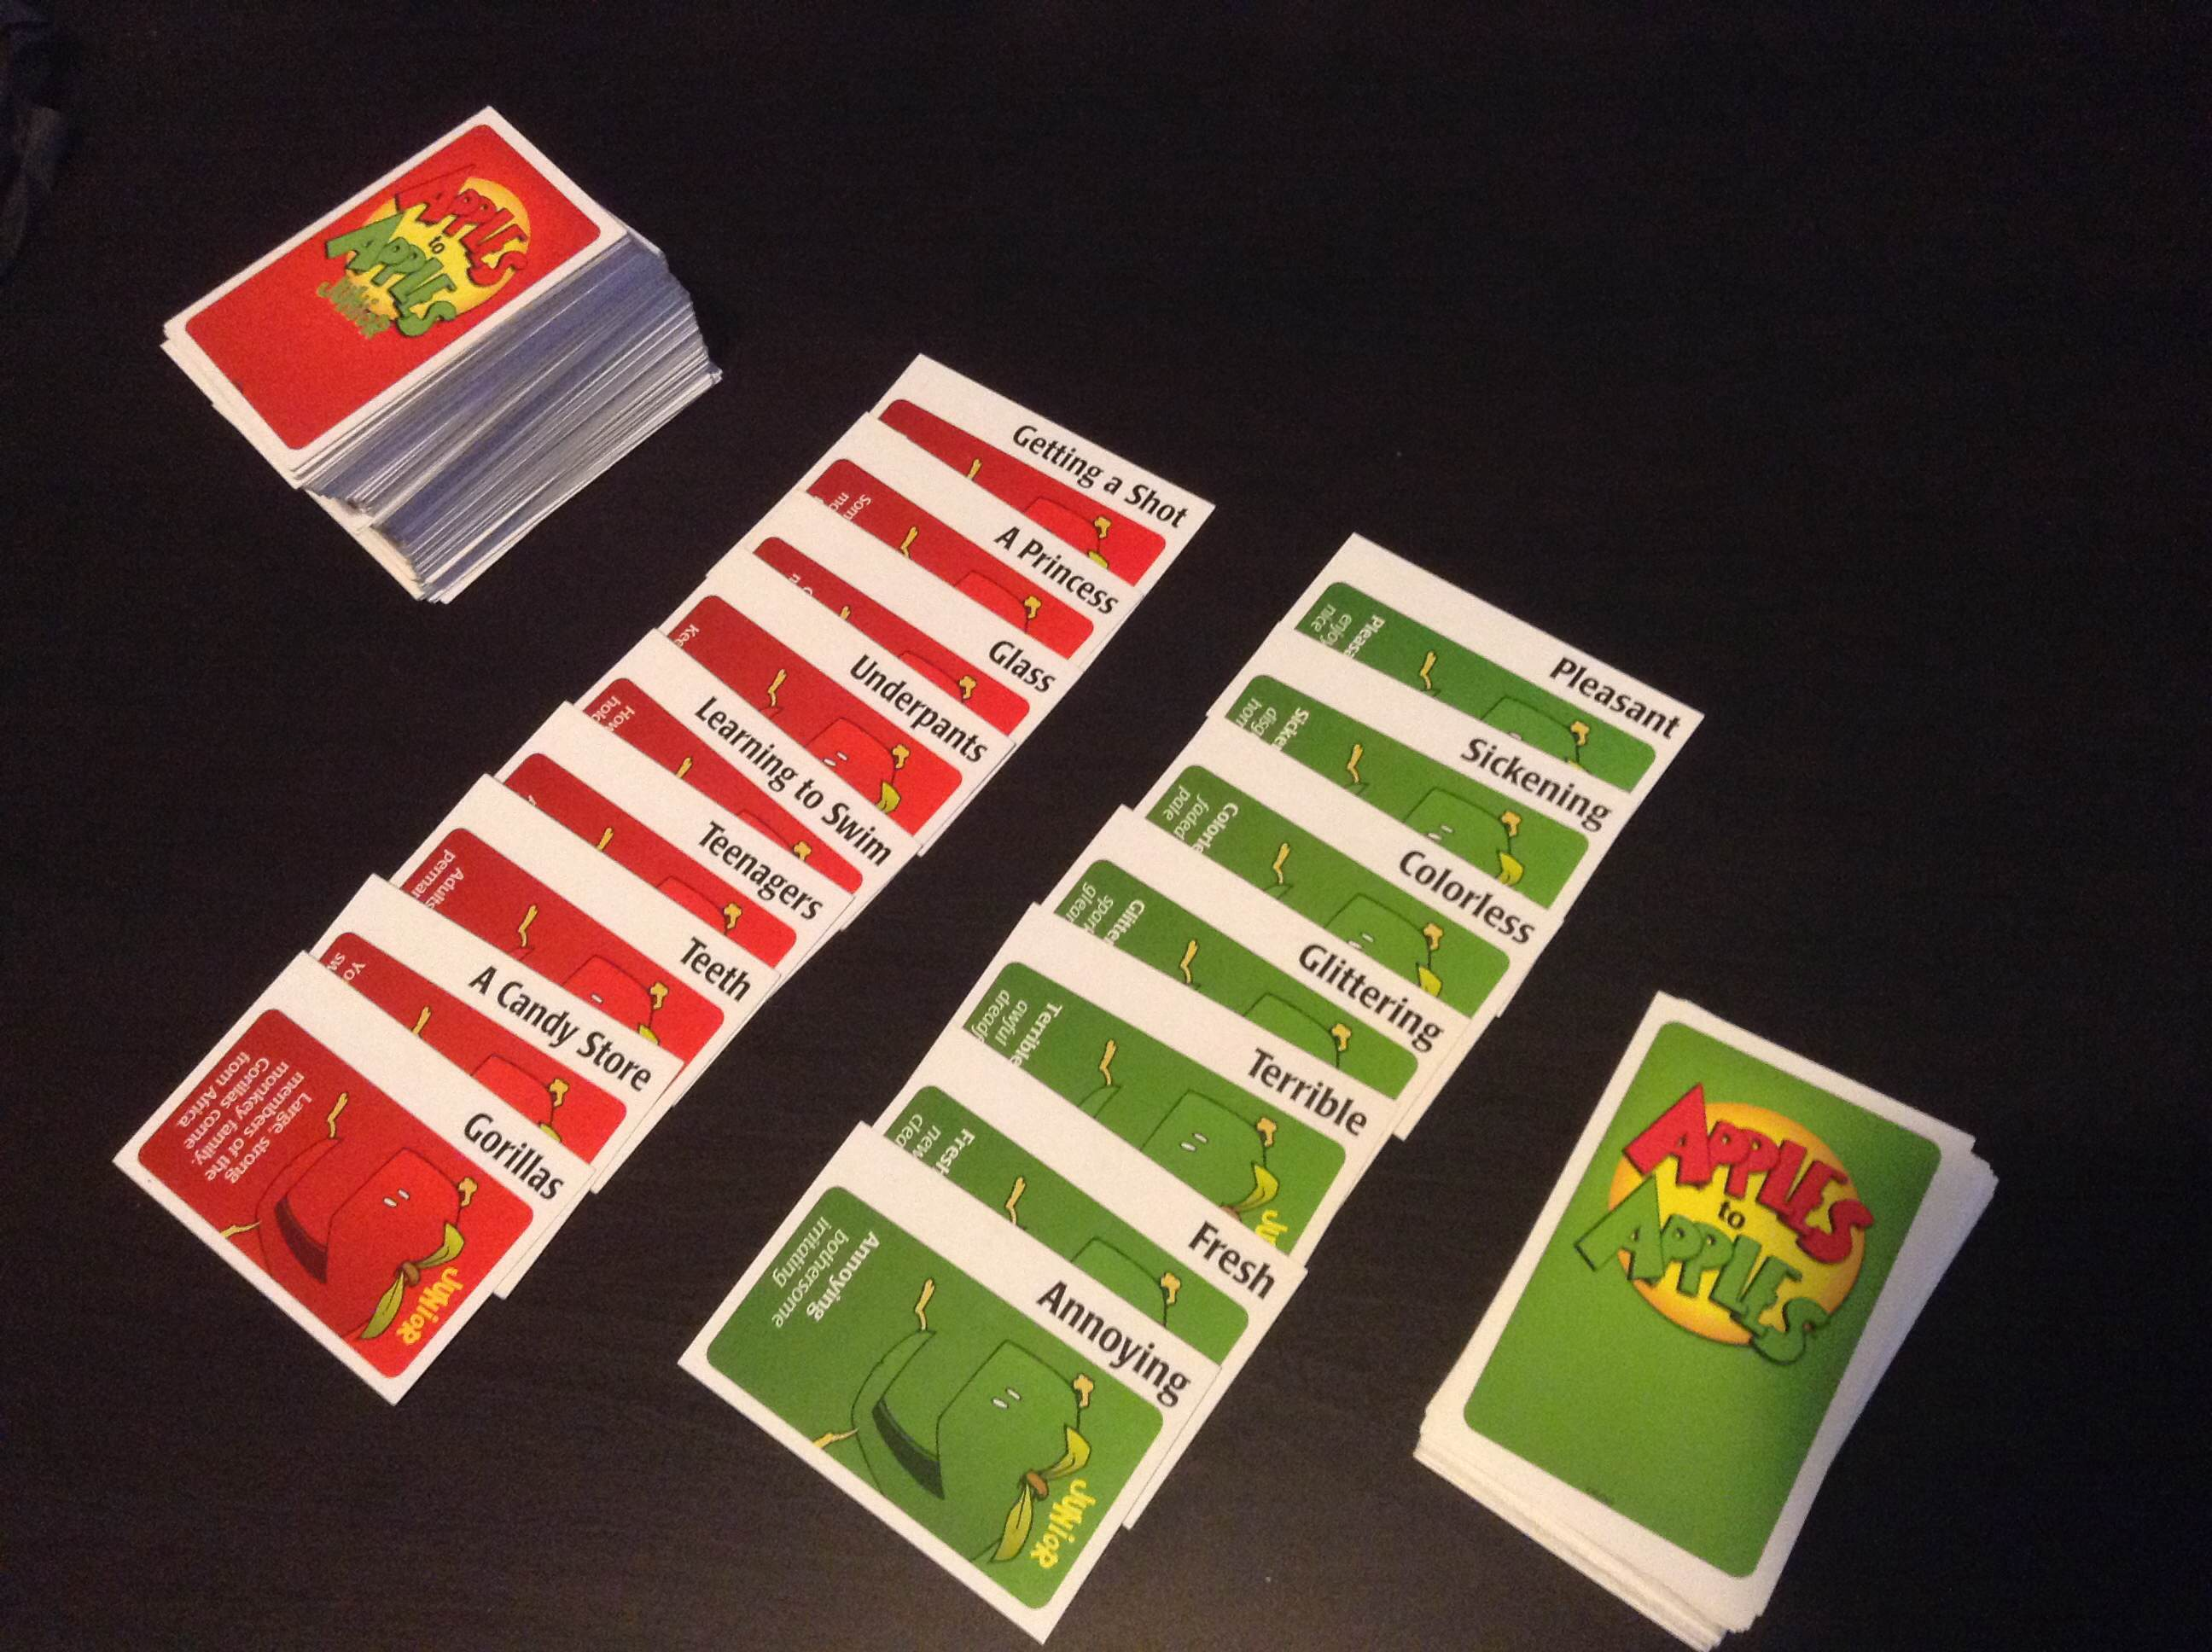 photo regarding Apples to Apples Cards Printable titled Adapting online games Apples toward apples